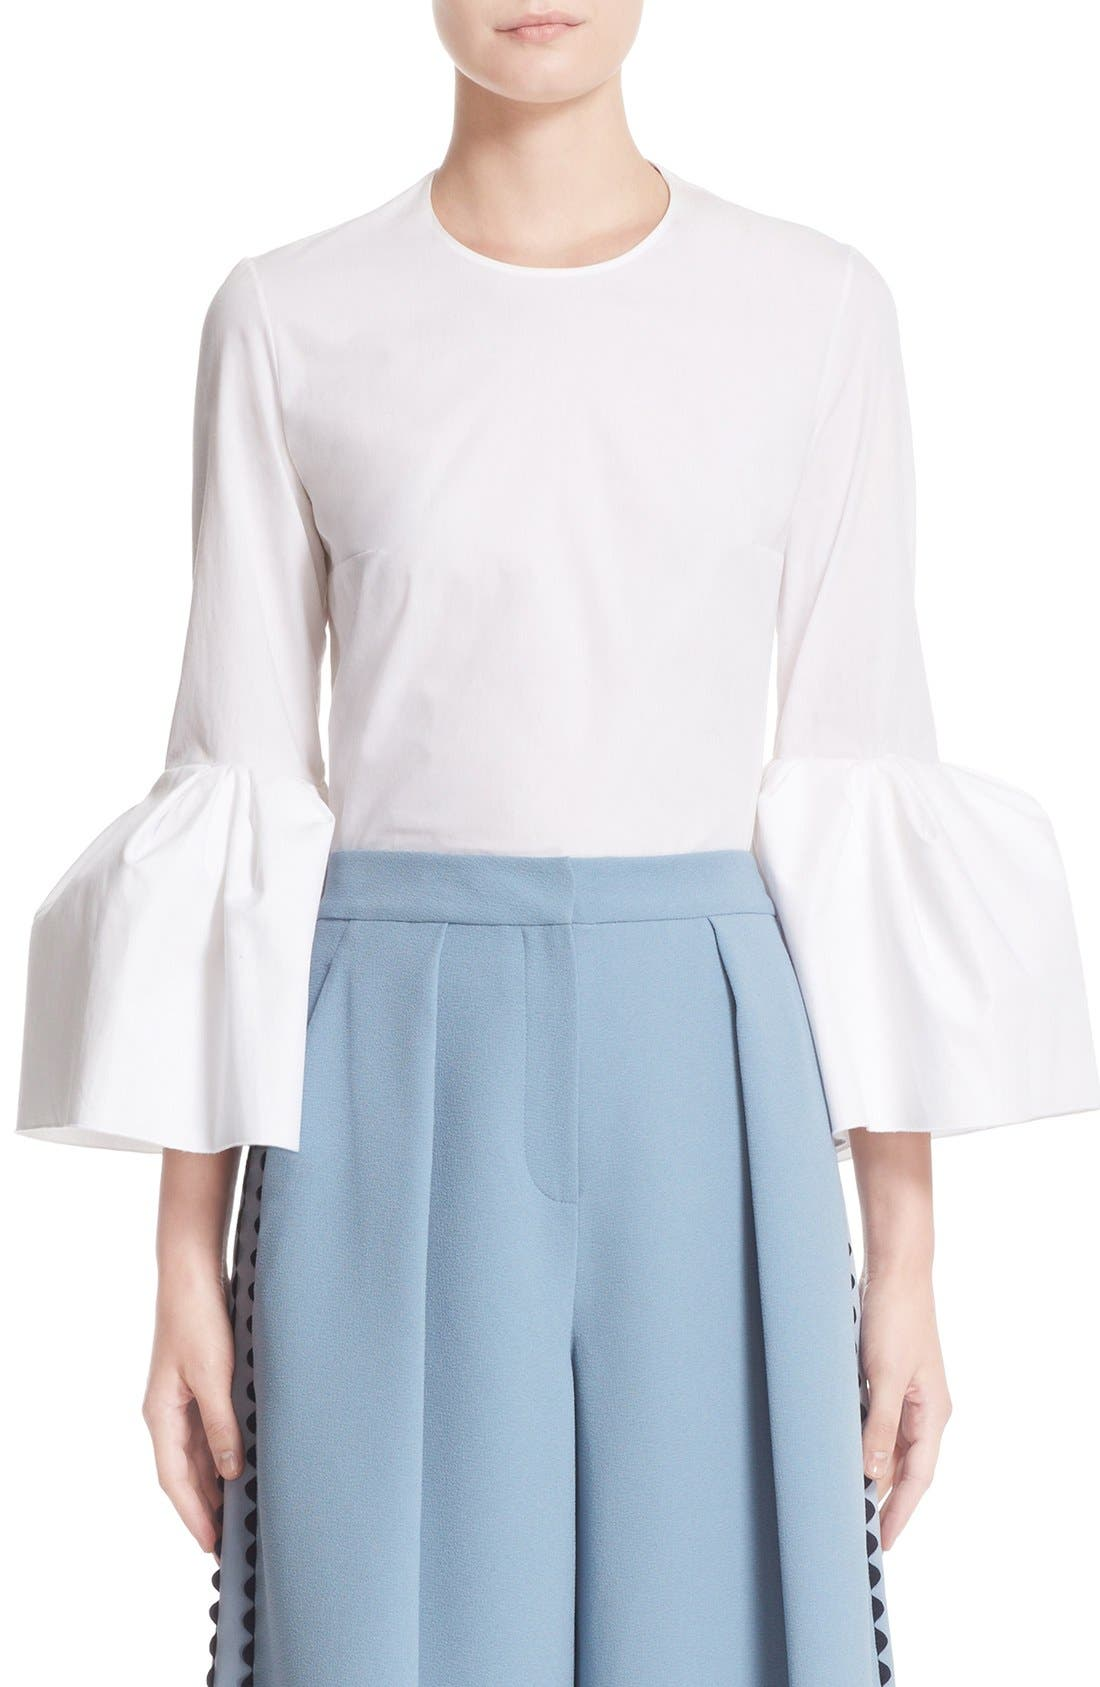 Truffaut Bell Sleeve Top,                             Main thumbnail 1, color,                             WHITE